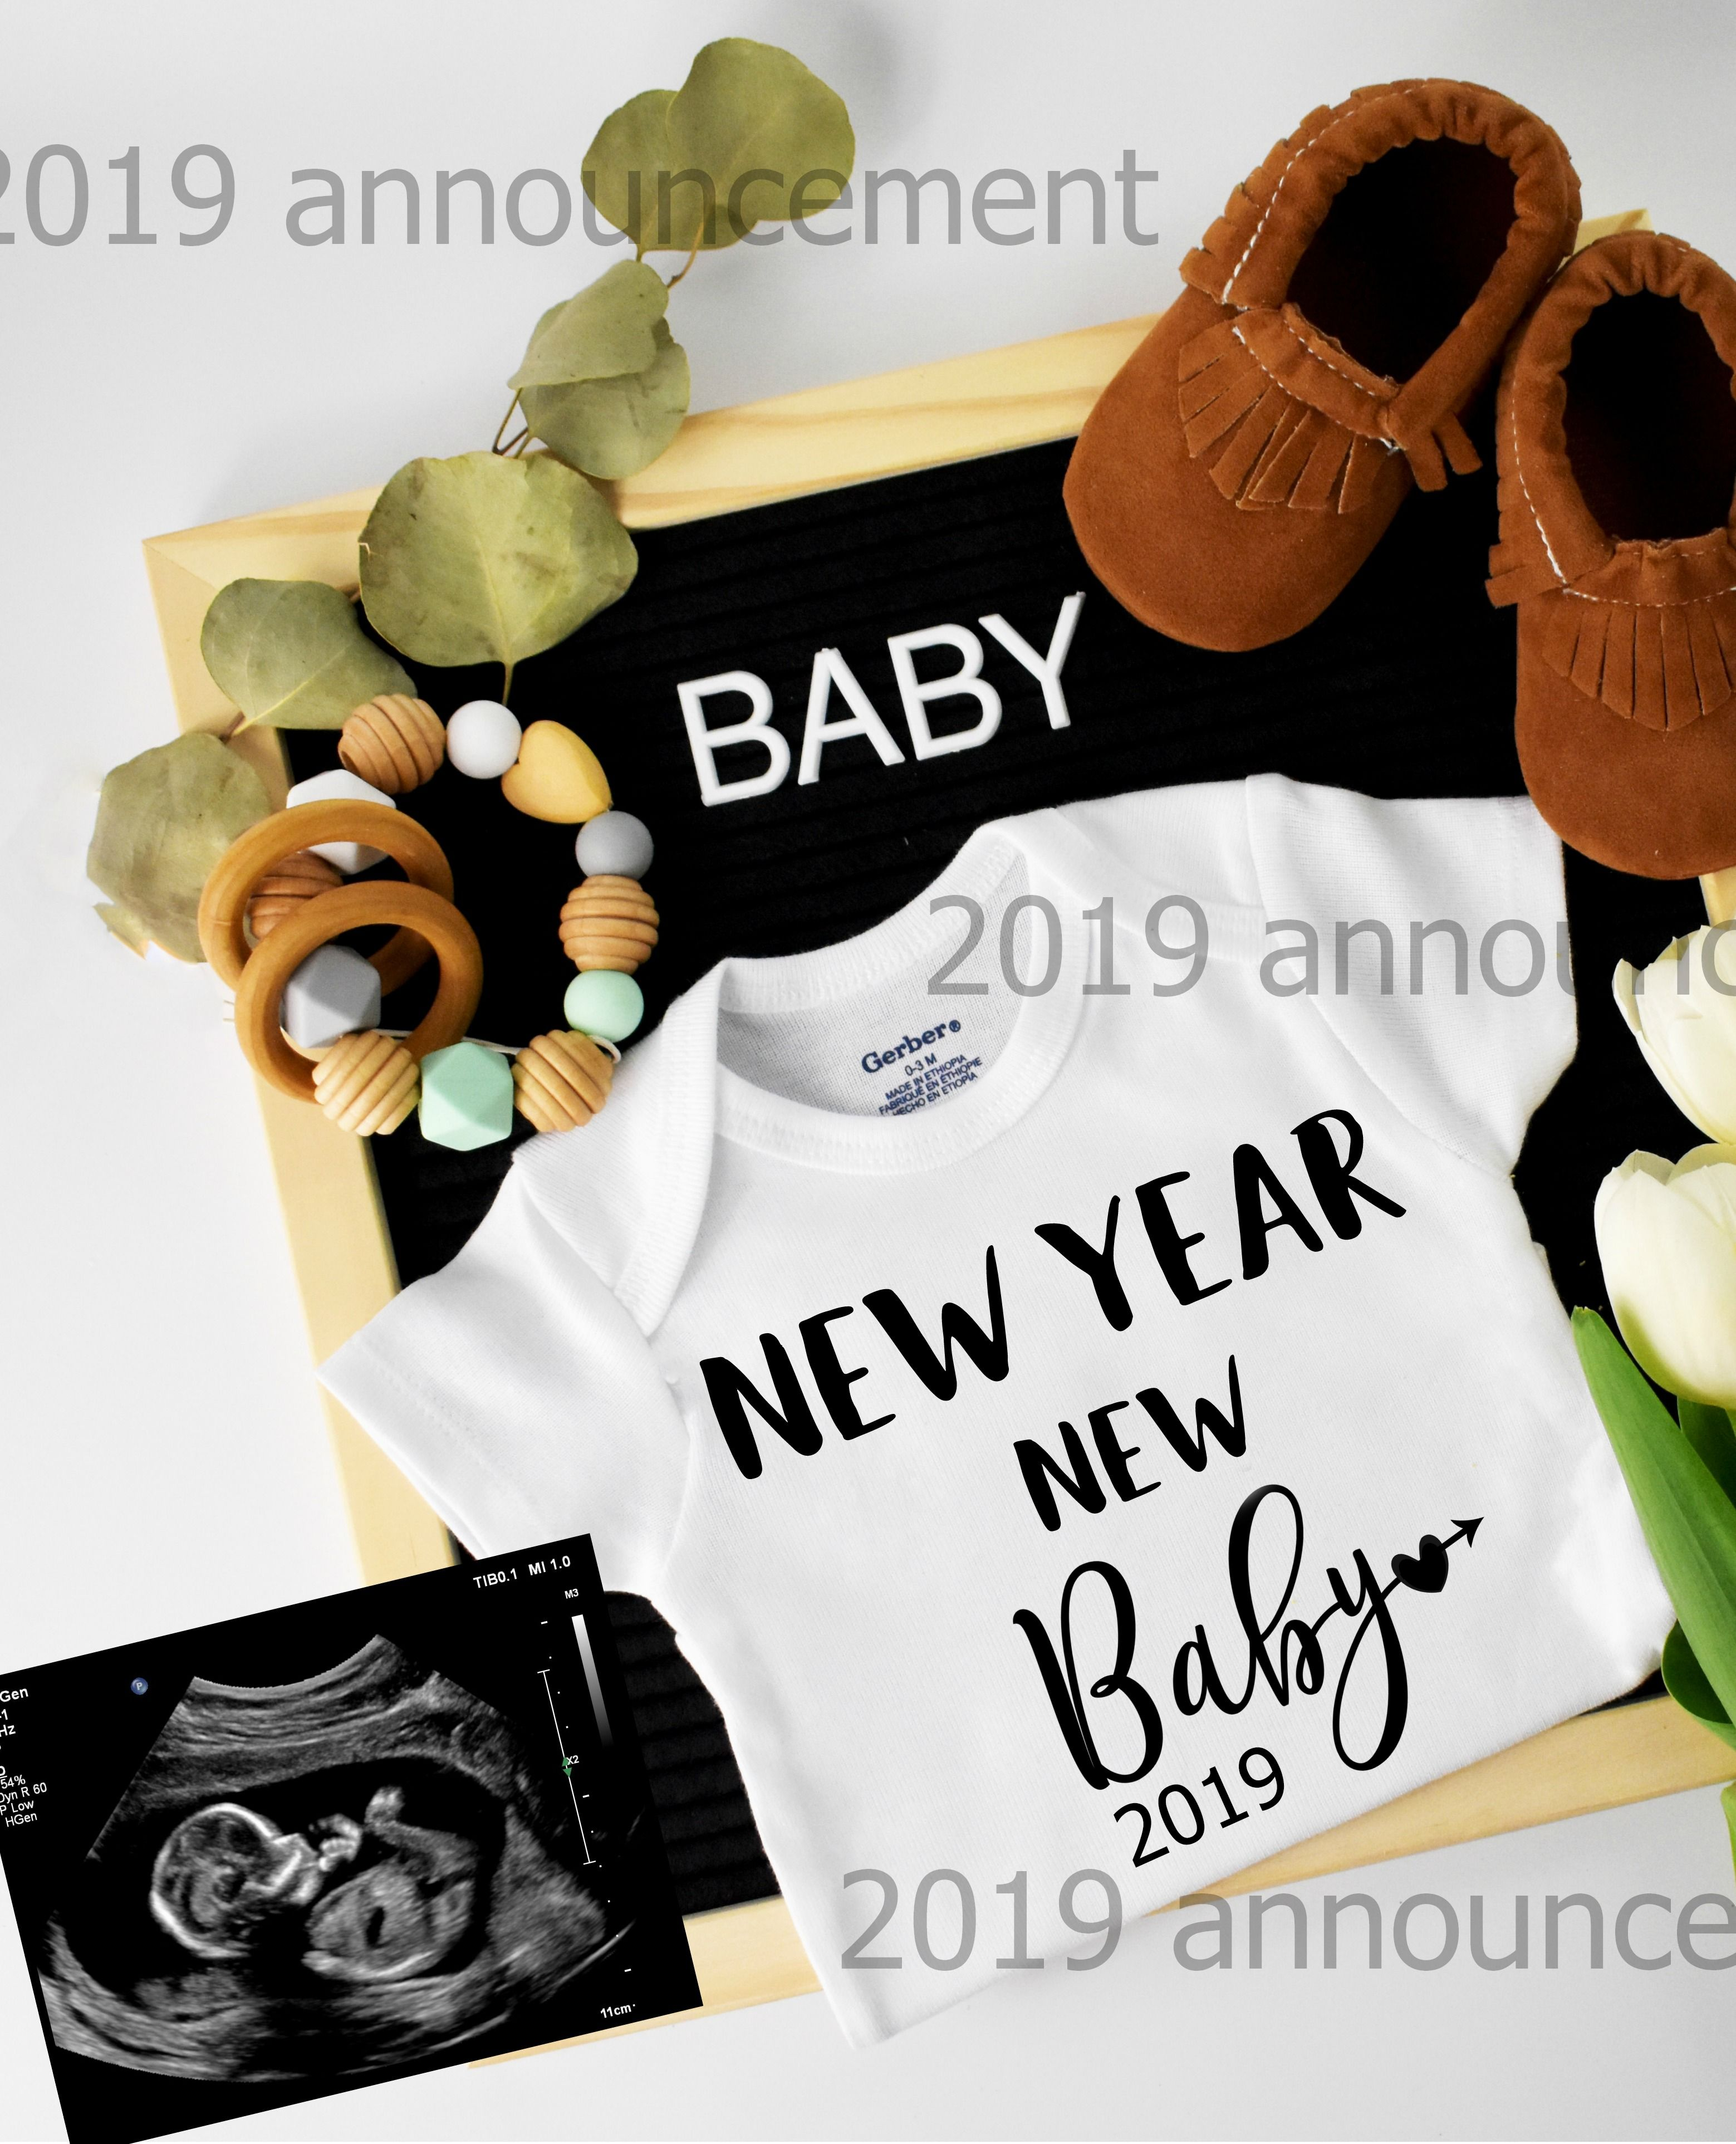 cd14a10e03e4a New year new baby 2019 announcement! | Baby announcements ideas ...